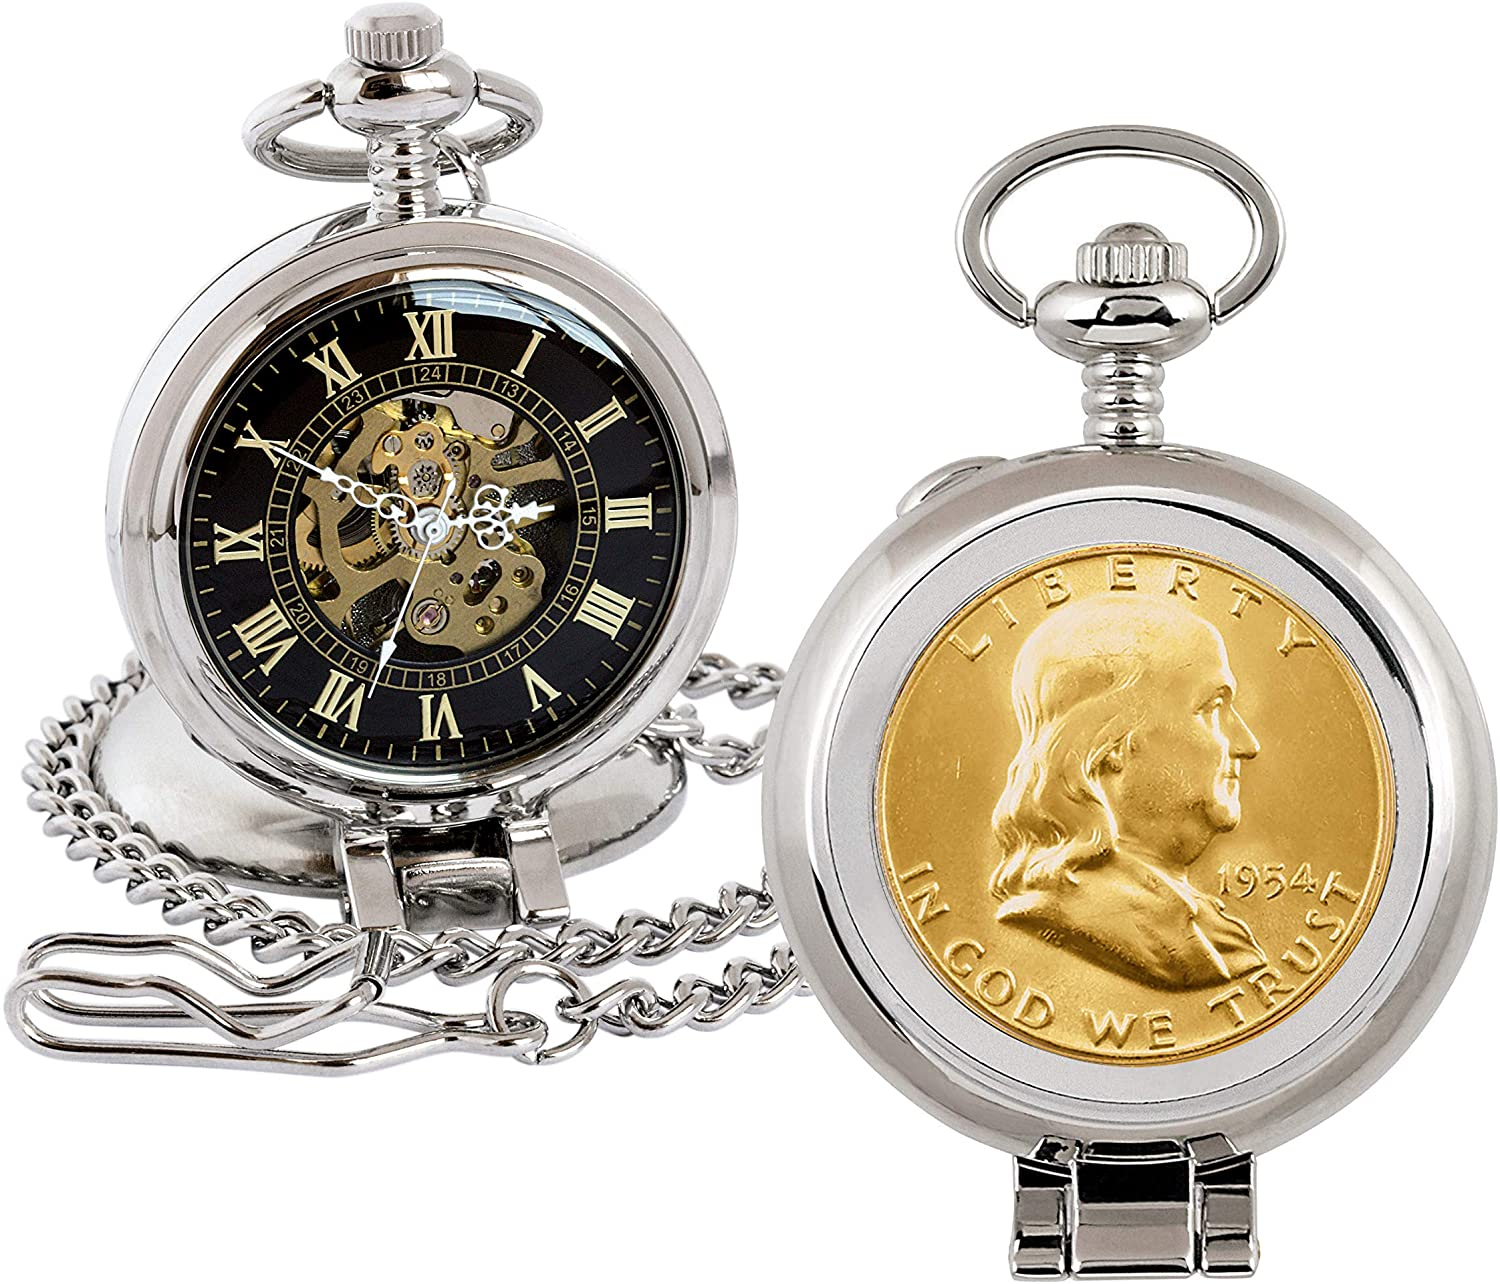 Coin Pocket Watch with Skeleton Quartz Movement | Gold Layered Silver Franklin Half Dollar | Genuine U.S. Coin | Sweeping Second Hand, Roman Numerals | Silvertone Case | Certificate of Authenticity